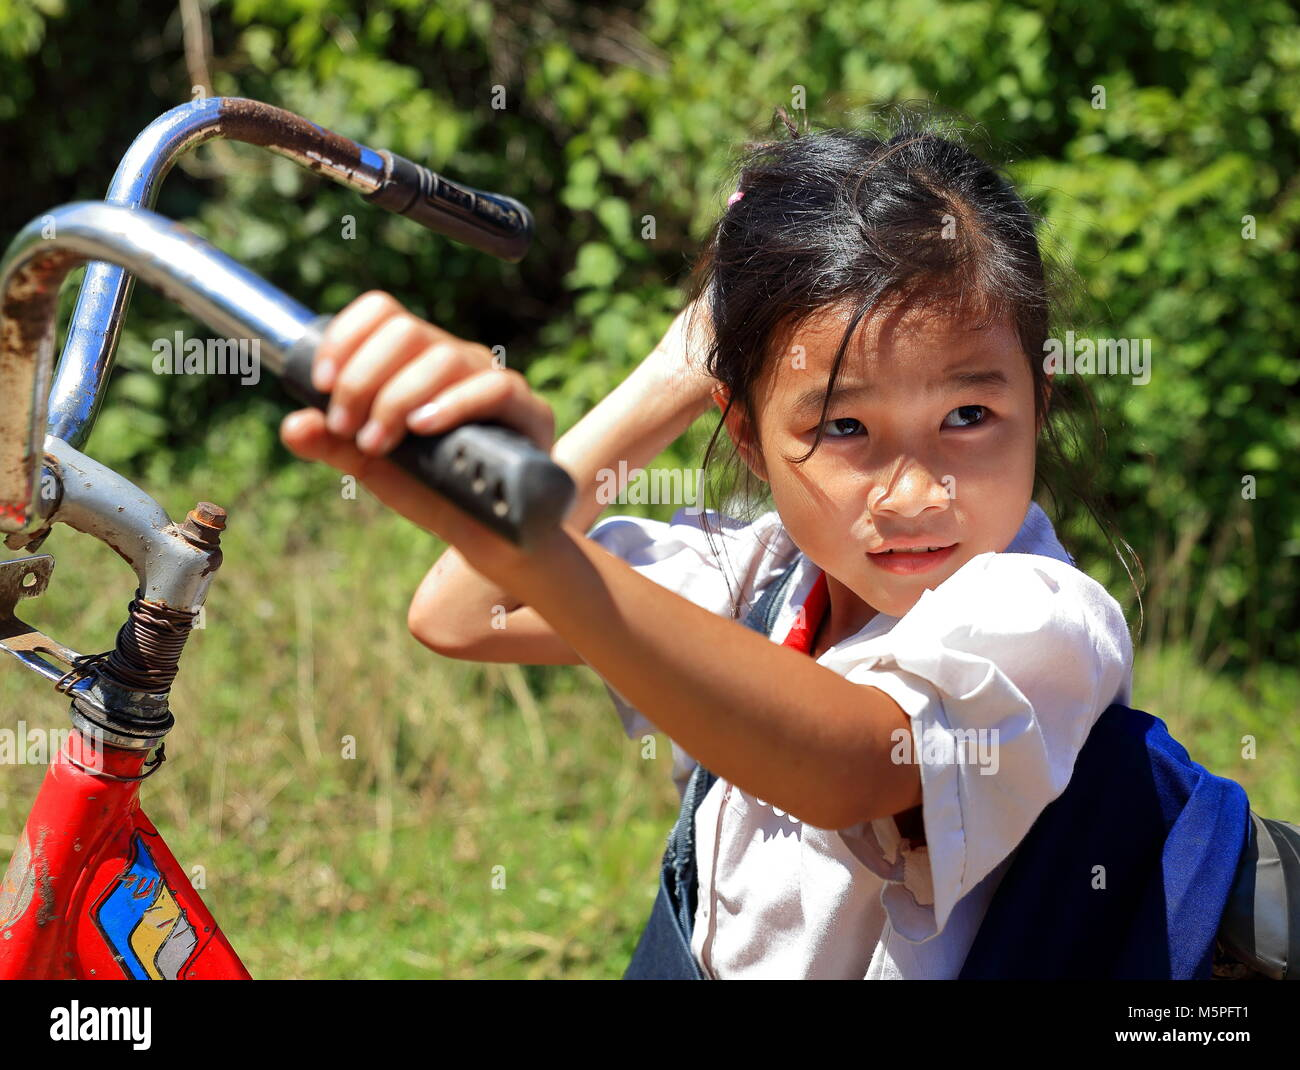 KHON,LAOS-OCTOBER 16, 2015:  Small school conducted by bike along the path to school on October 16, Khon, Laos. - Stock Image